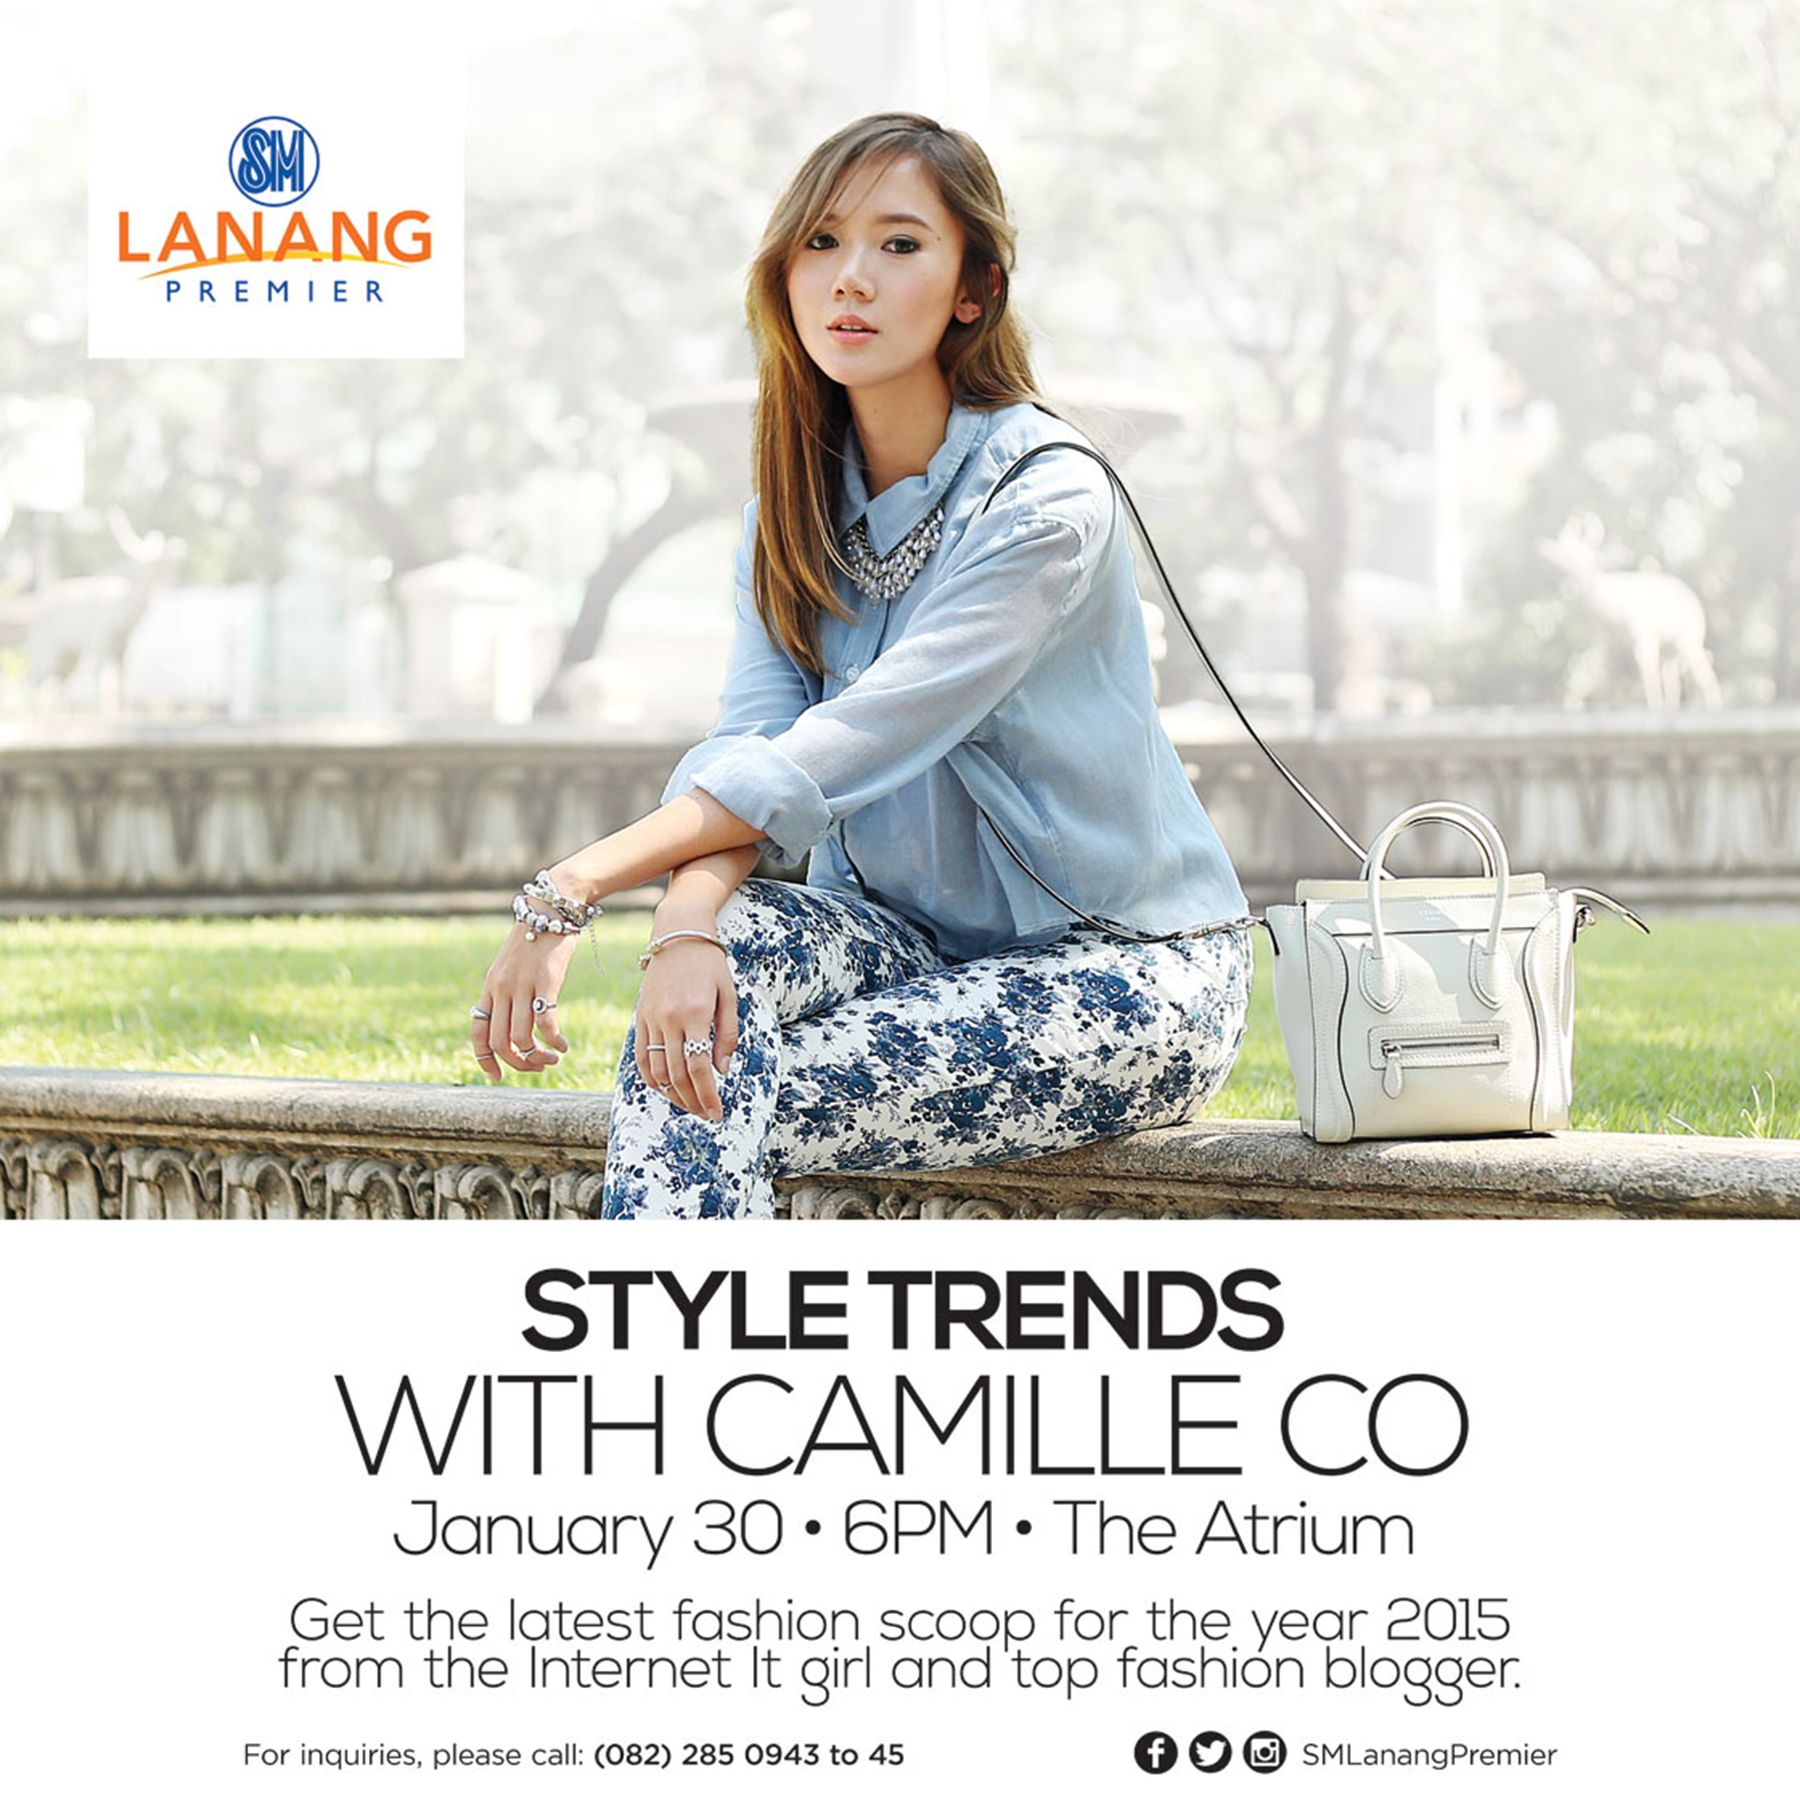 Style Trends With Camille Co At SM Lanang